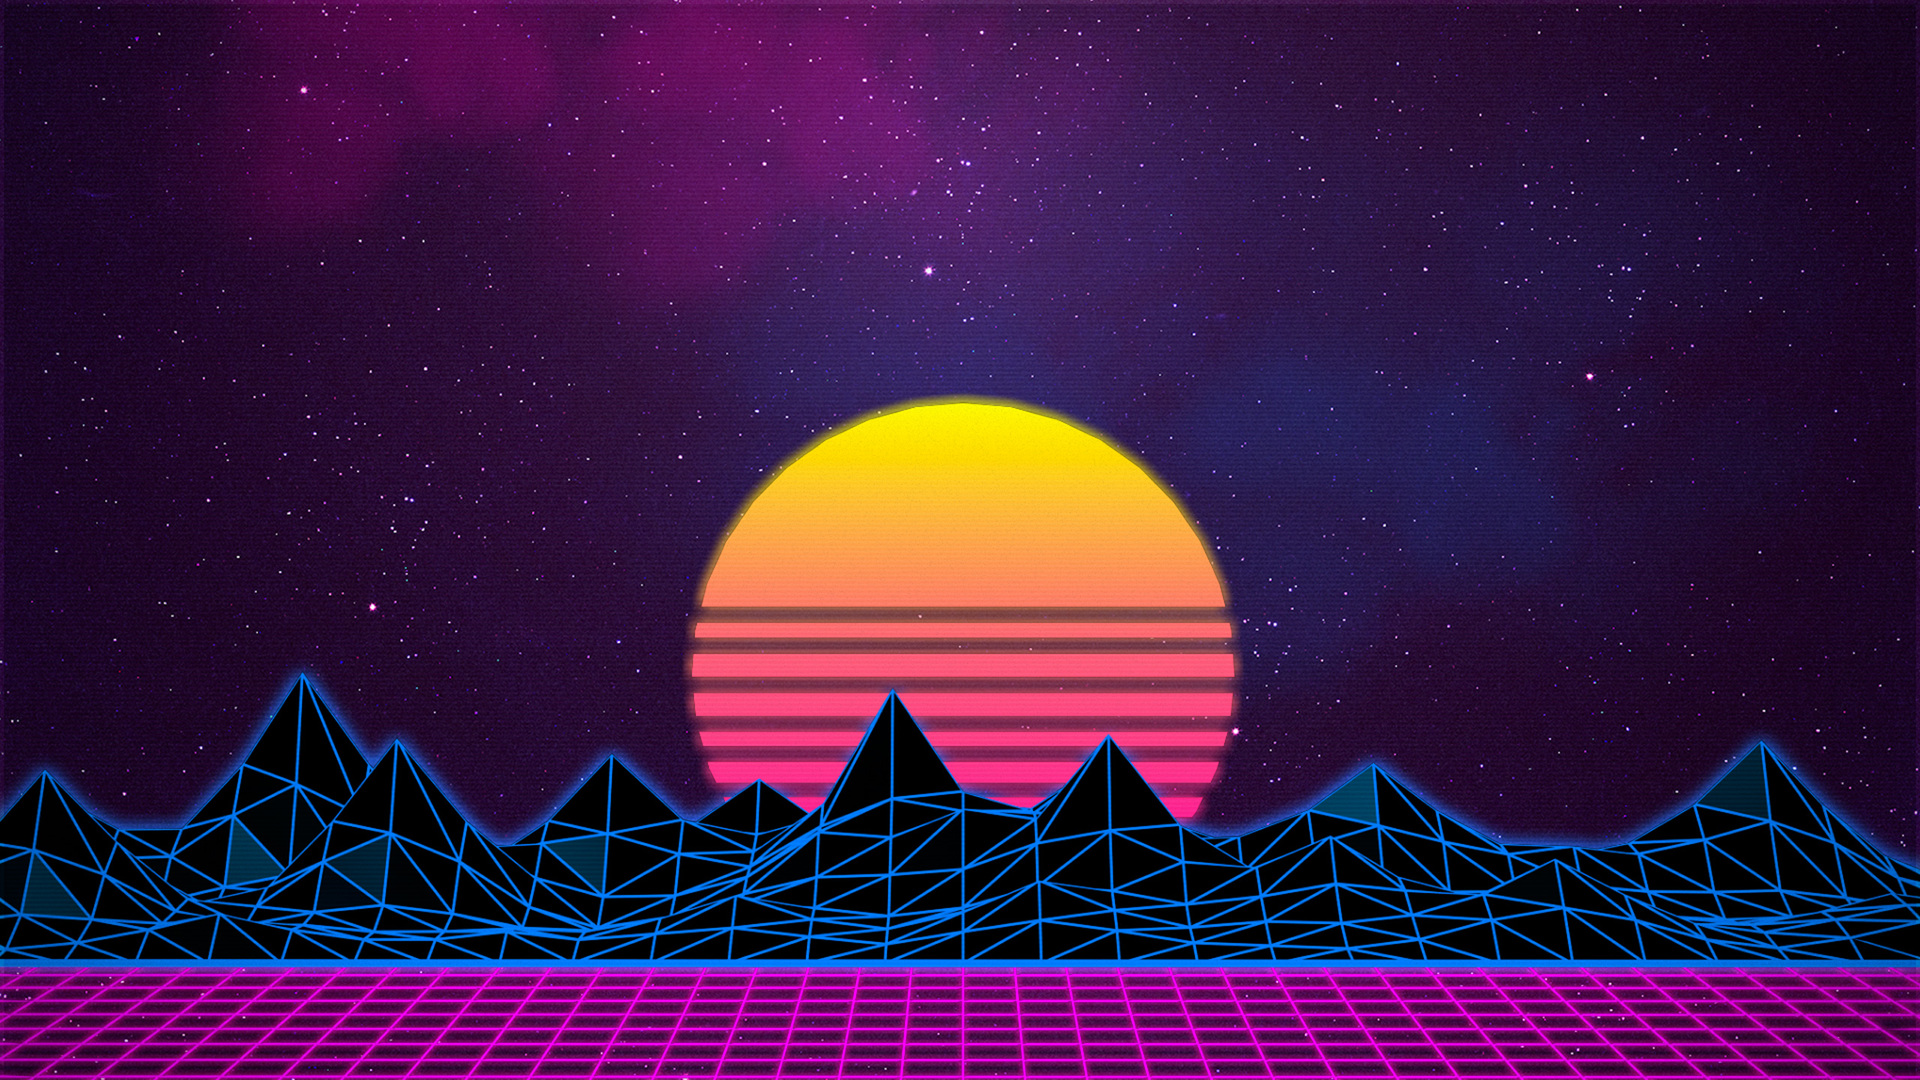 1920x1080 Retrowave Laptop Full Hd 1080p Hd 4k Wallpapers